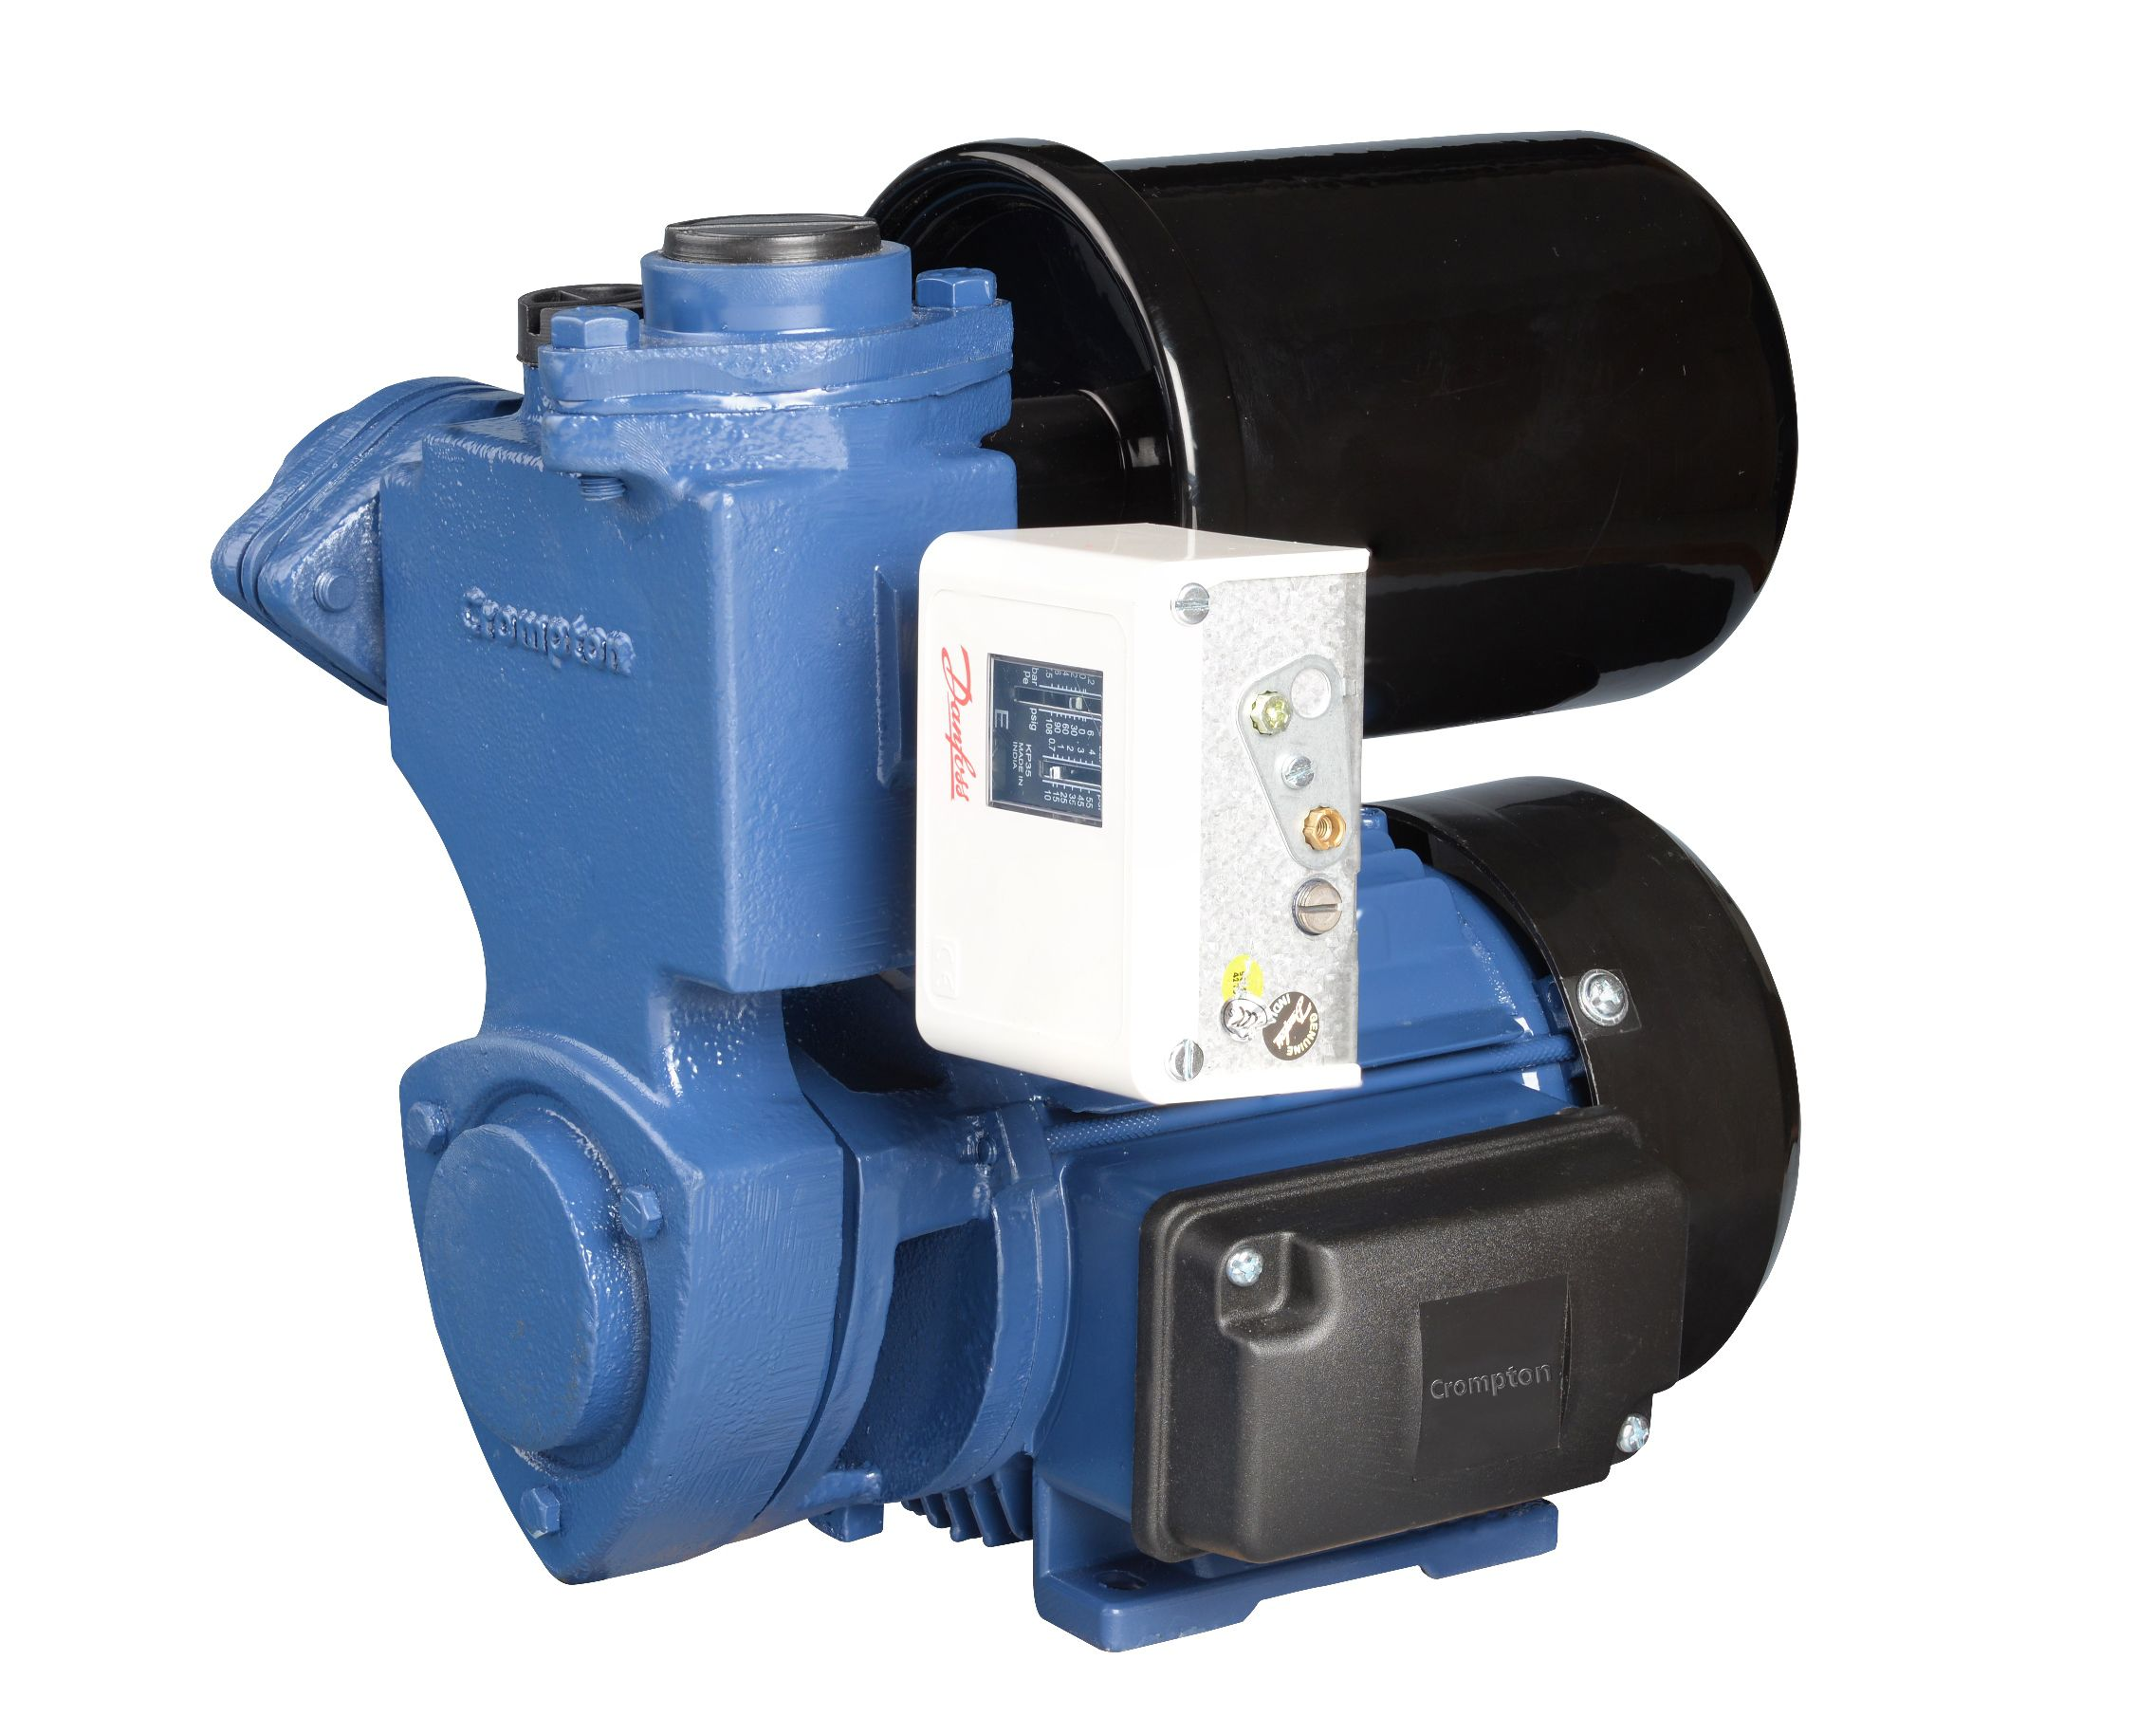 Crompton Greaves Mini Force II Pressure Pump